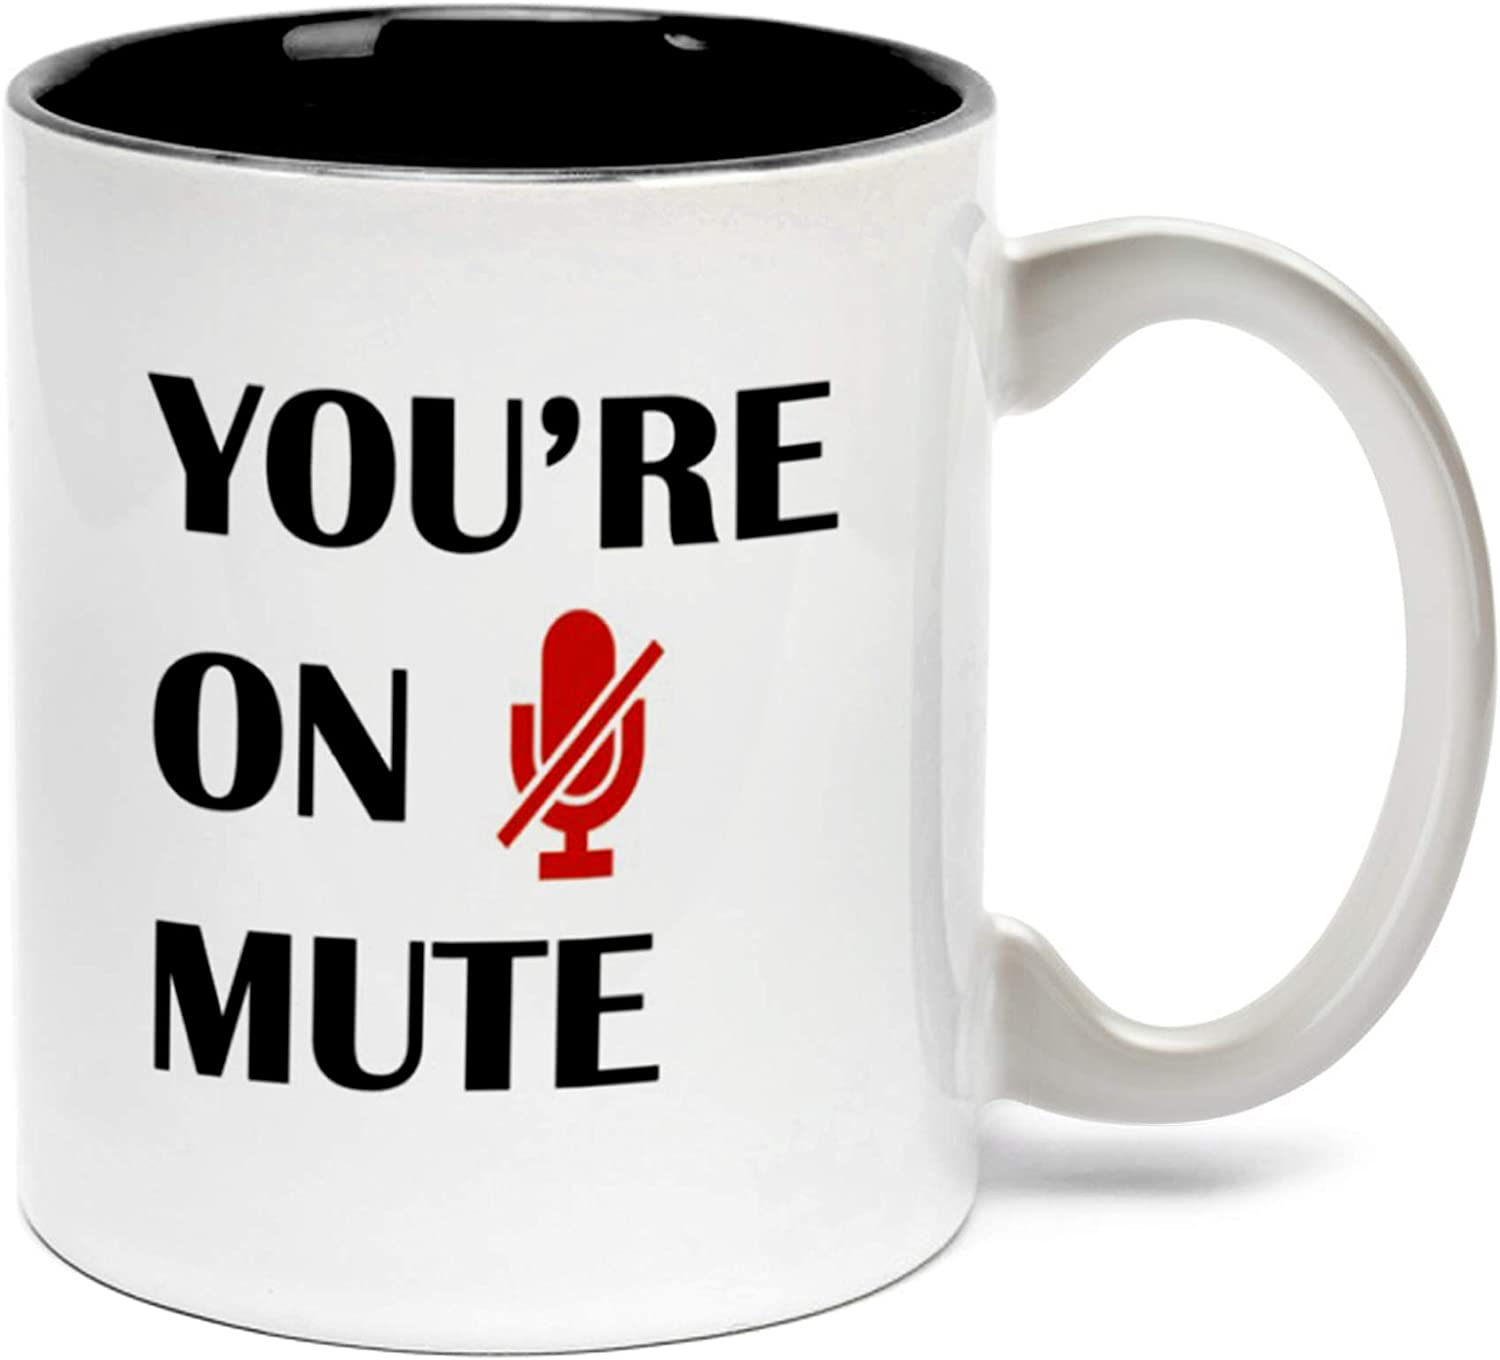 You're On Mute Mug Funny for Day free Novelt Coffee Mother's Limited price